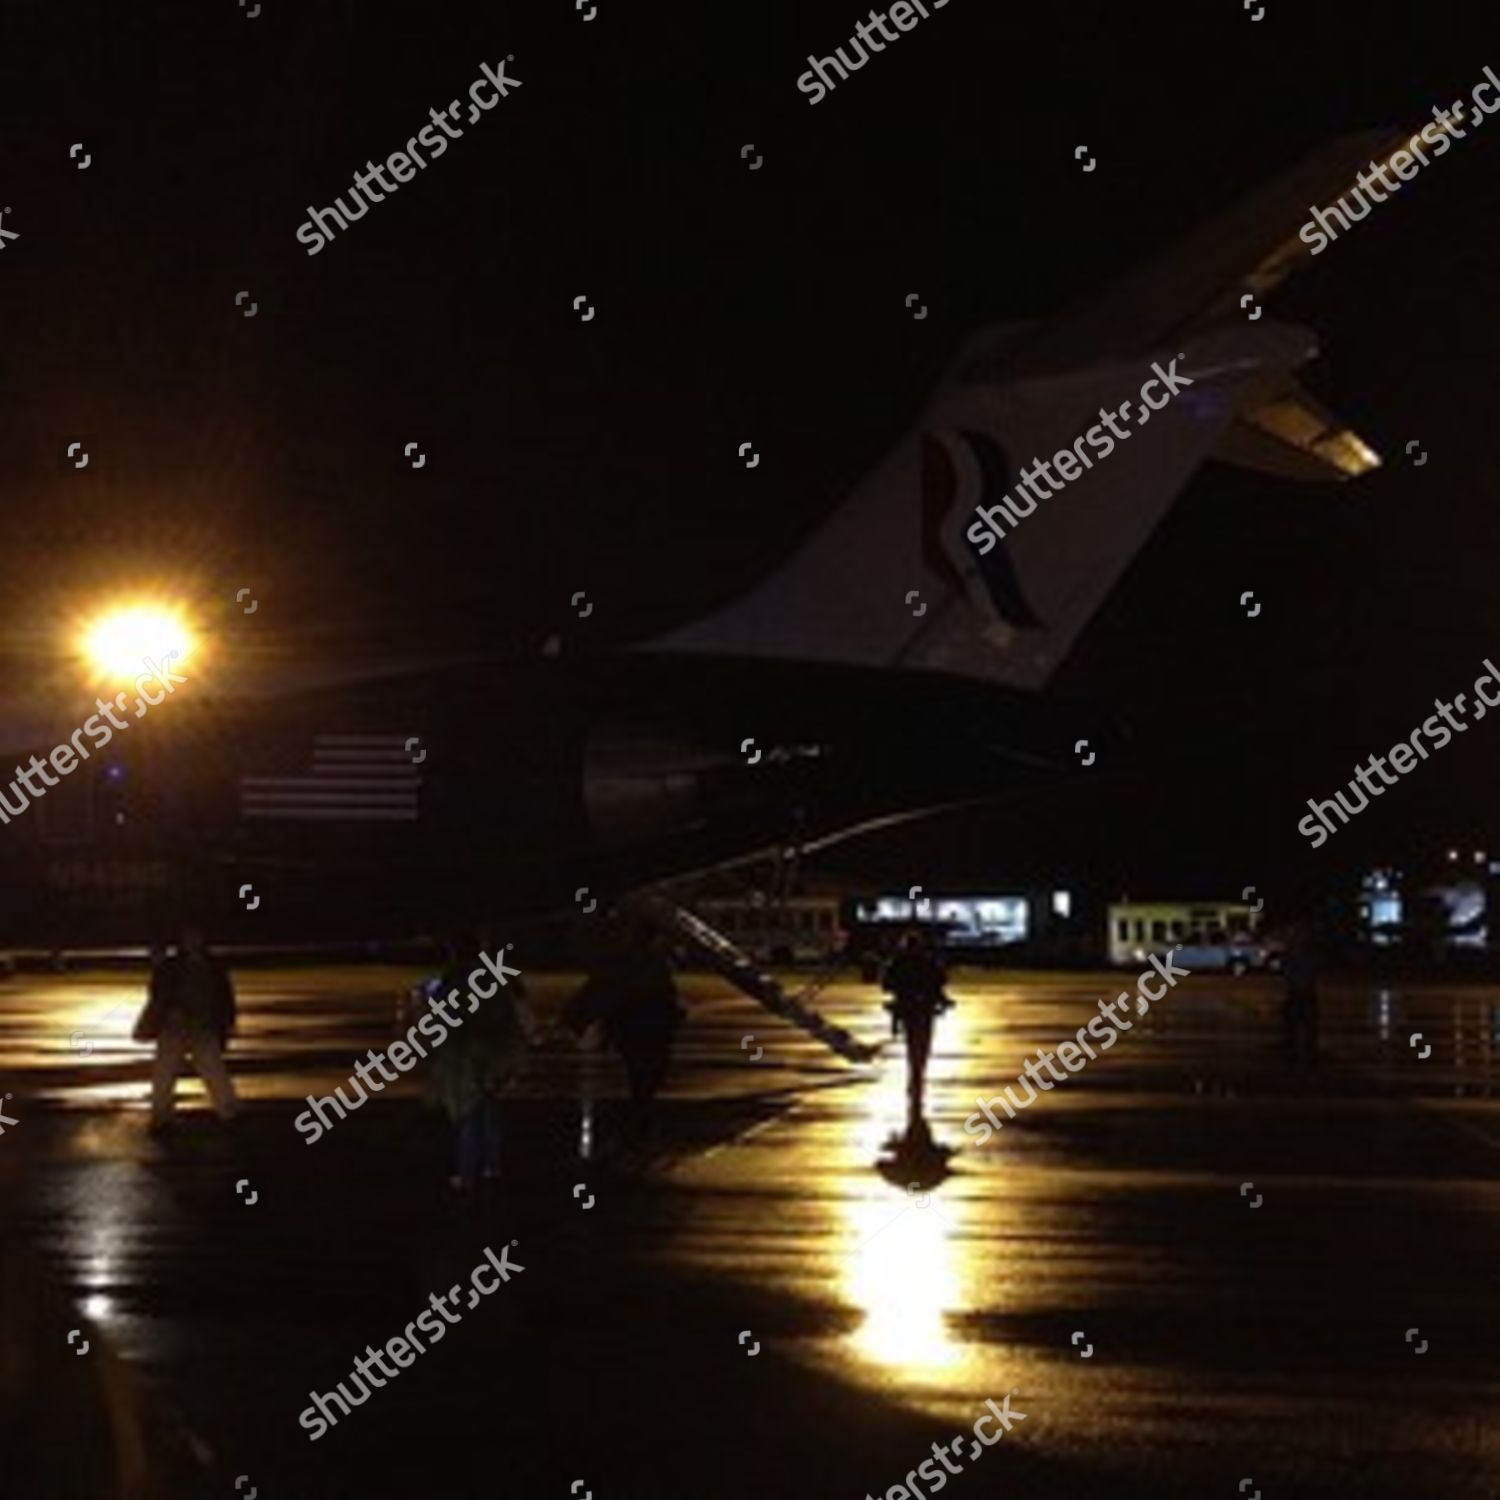 Returning Romney charter plane drizzle aponthetrail Editorial Stock